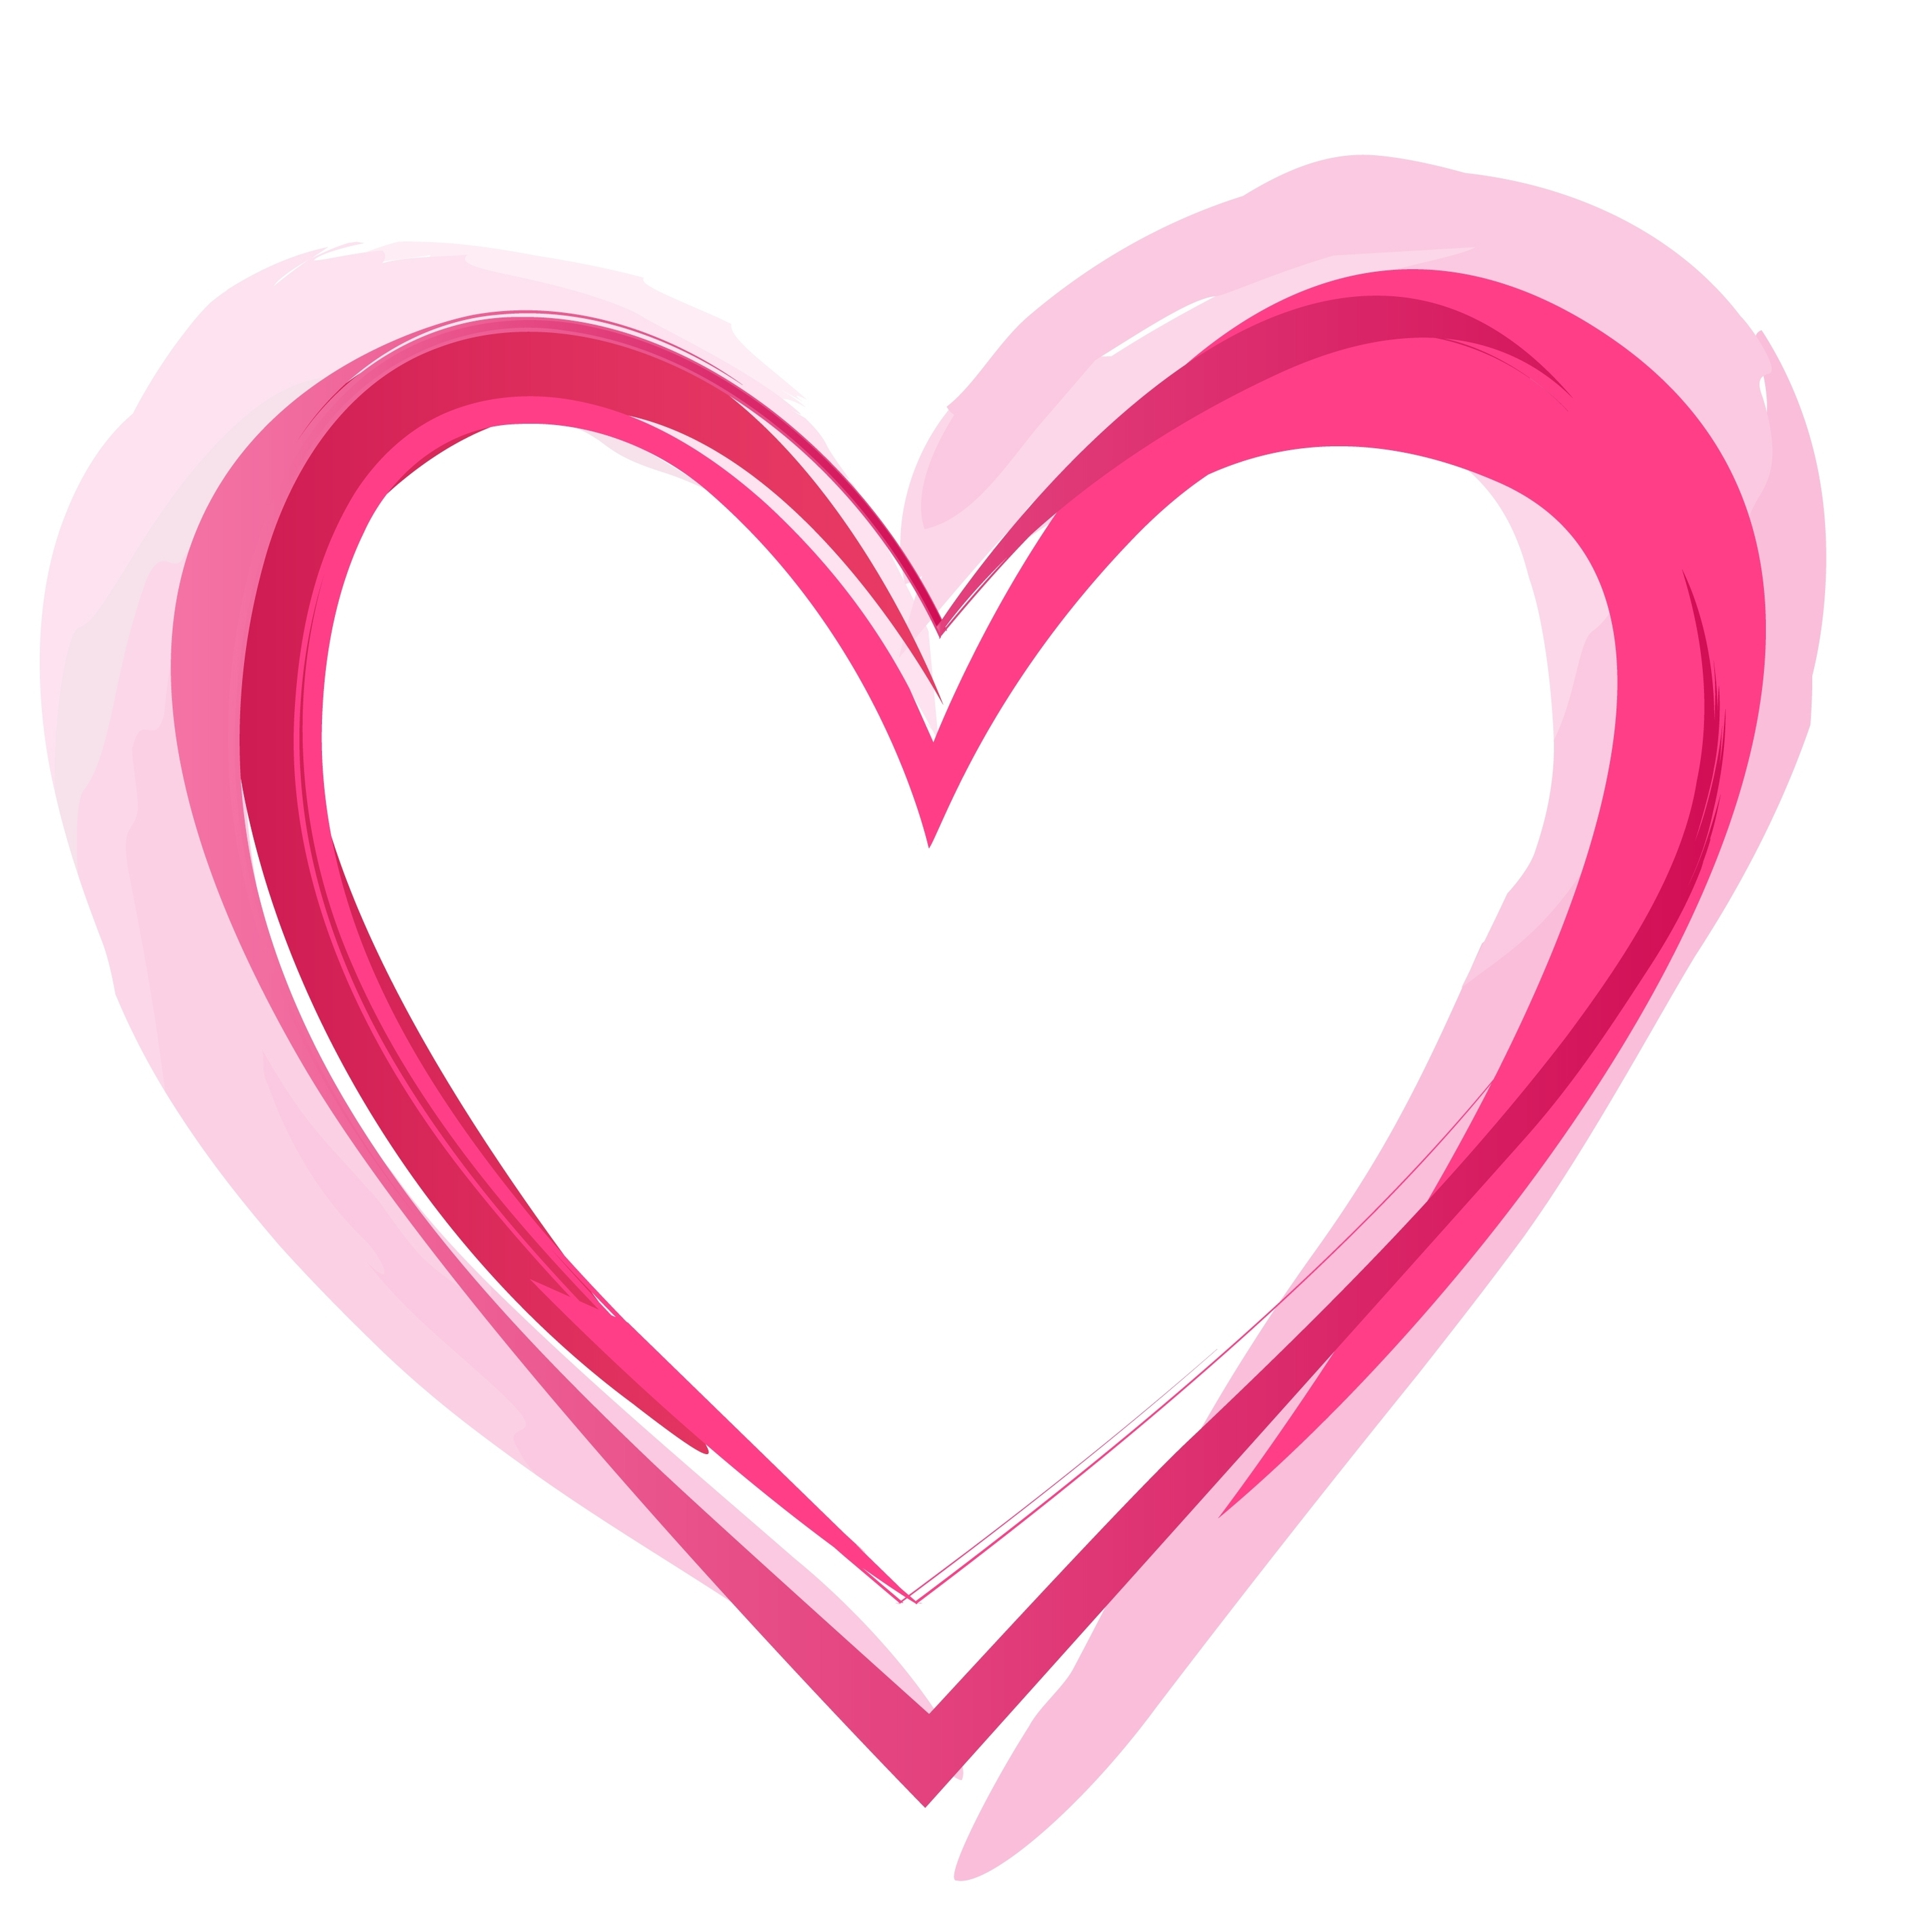 2850x2850 Heart Outline Outline Of A Heart With Hearts Vector By Shawlinmohd